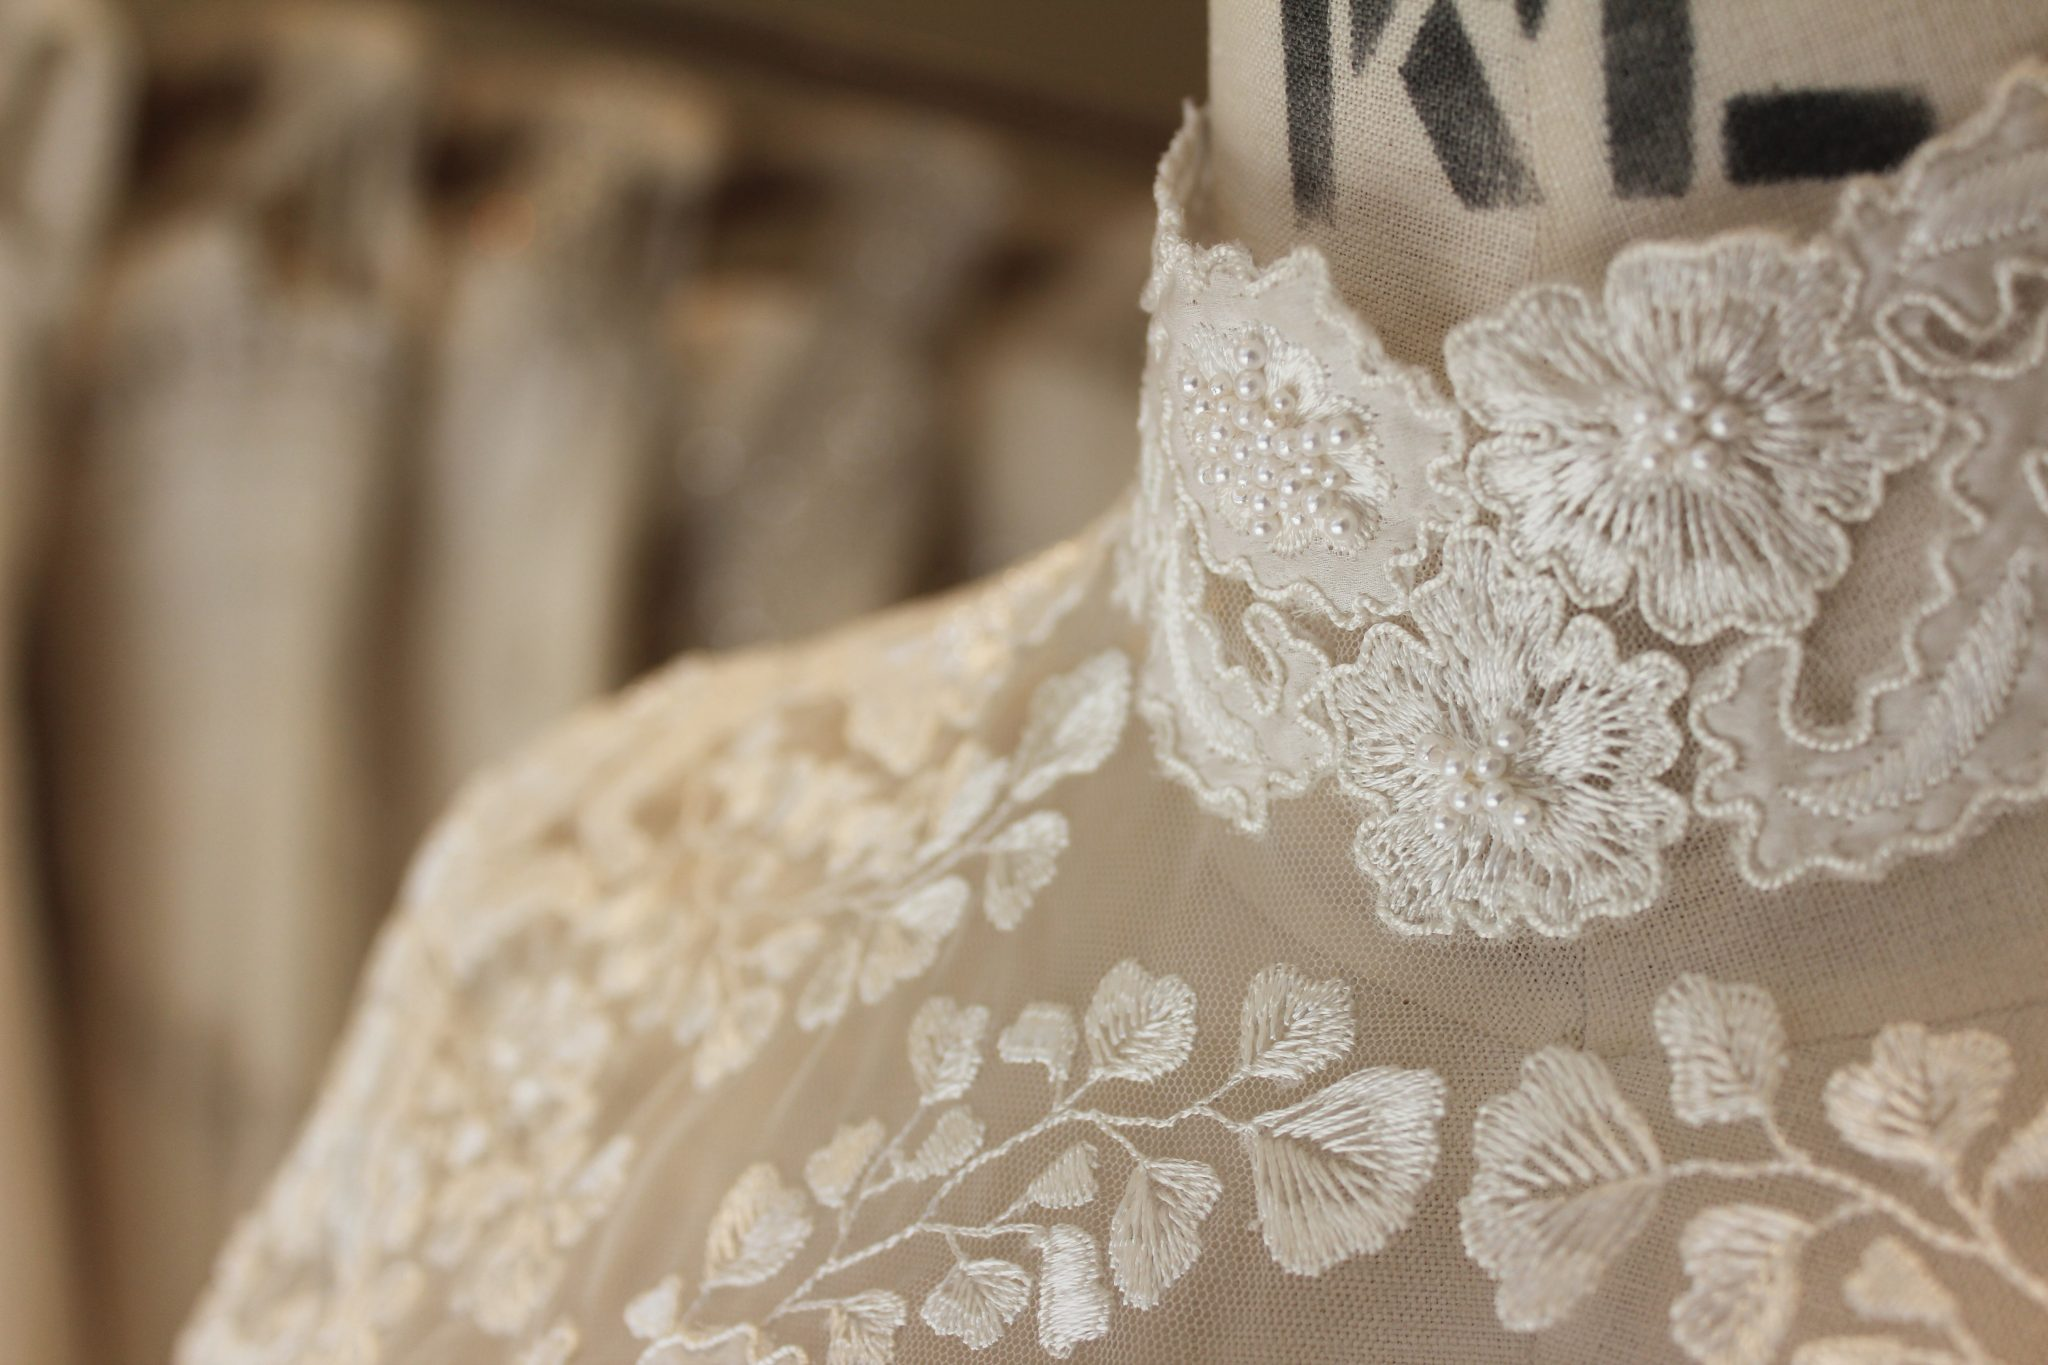 Collar detail on a Phillipa Lepley embroidered wedding dress with high collar neckline